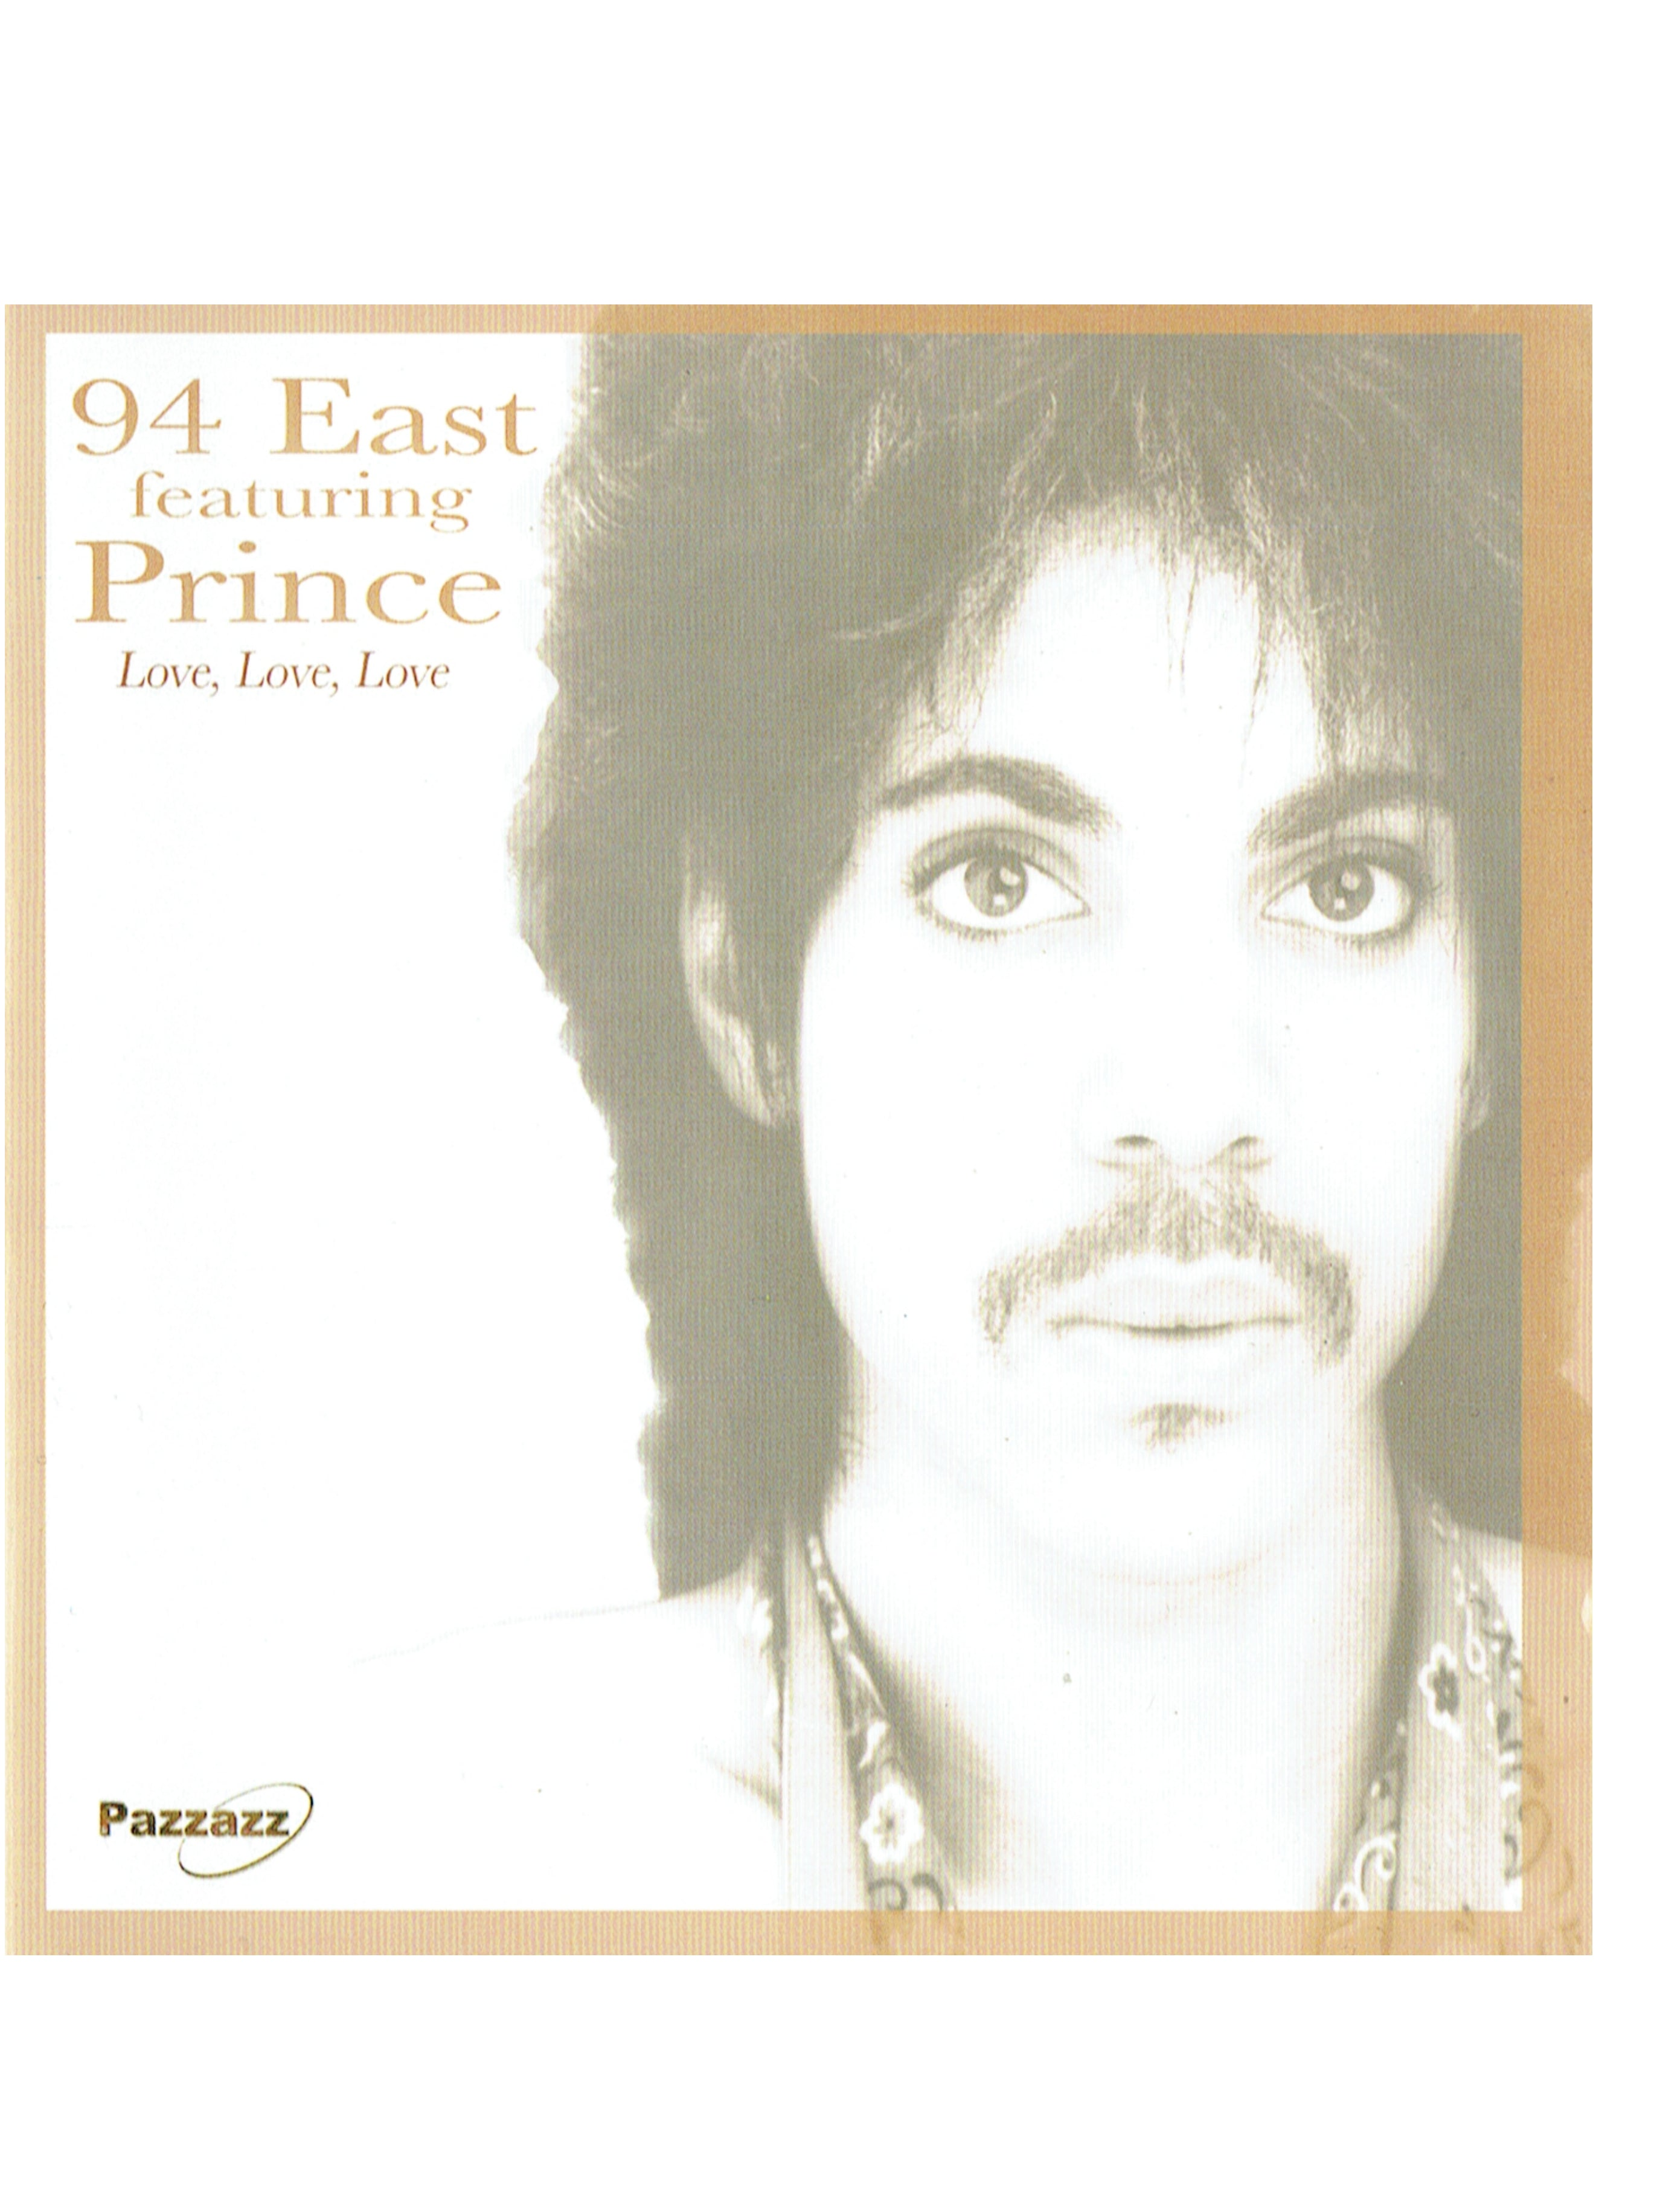 94 East Featuring Prince Love Love Love CD Compact Disc Brand New